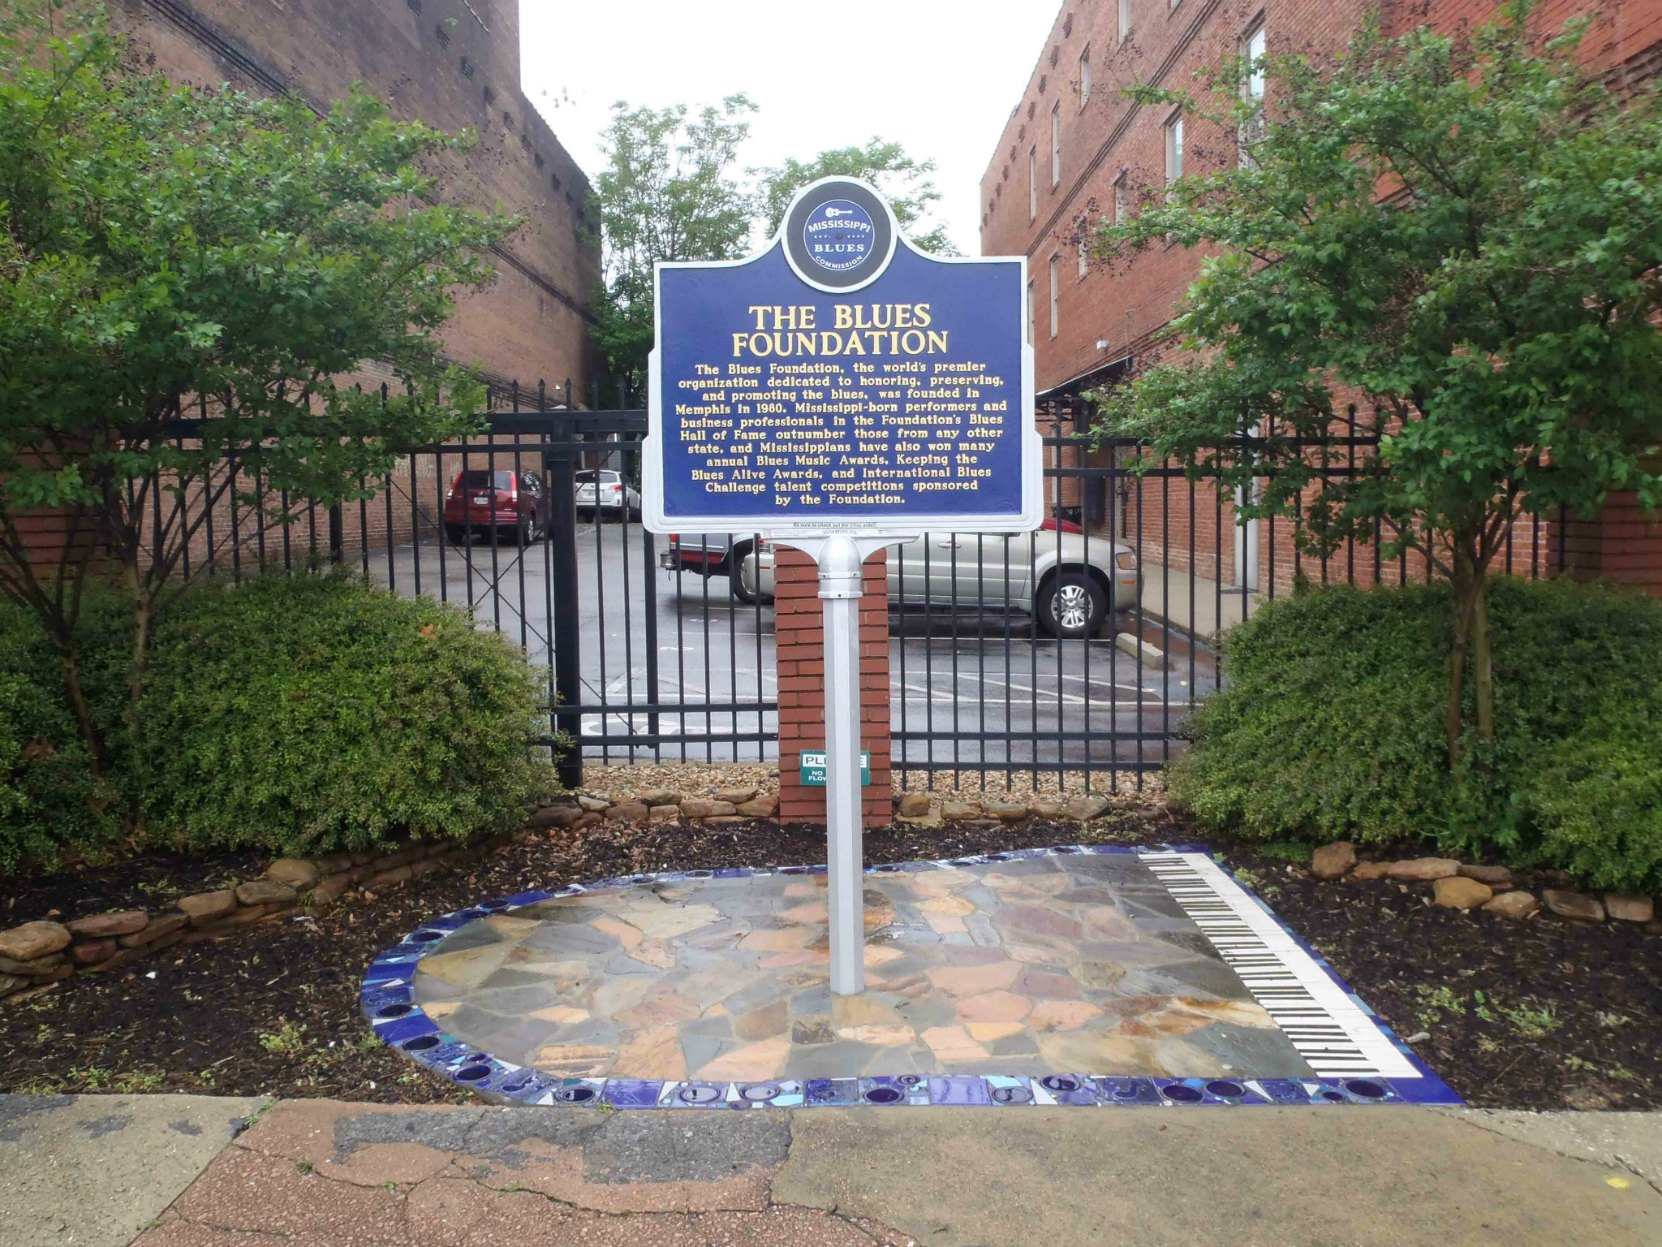 Mississippi Blues Trail marker, The Blues Foundation, S. Main Street, Memphis, Tennessee